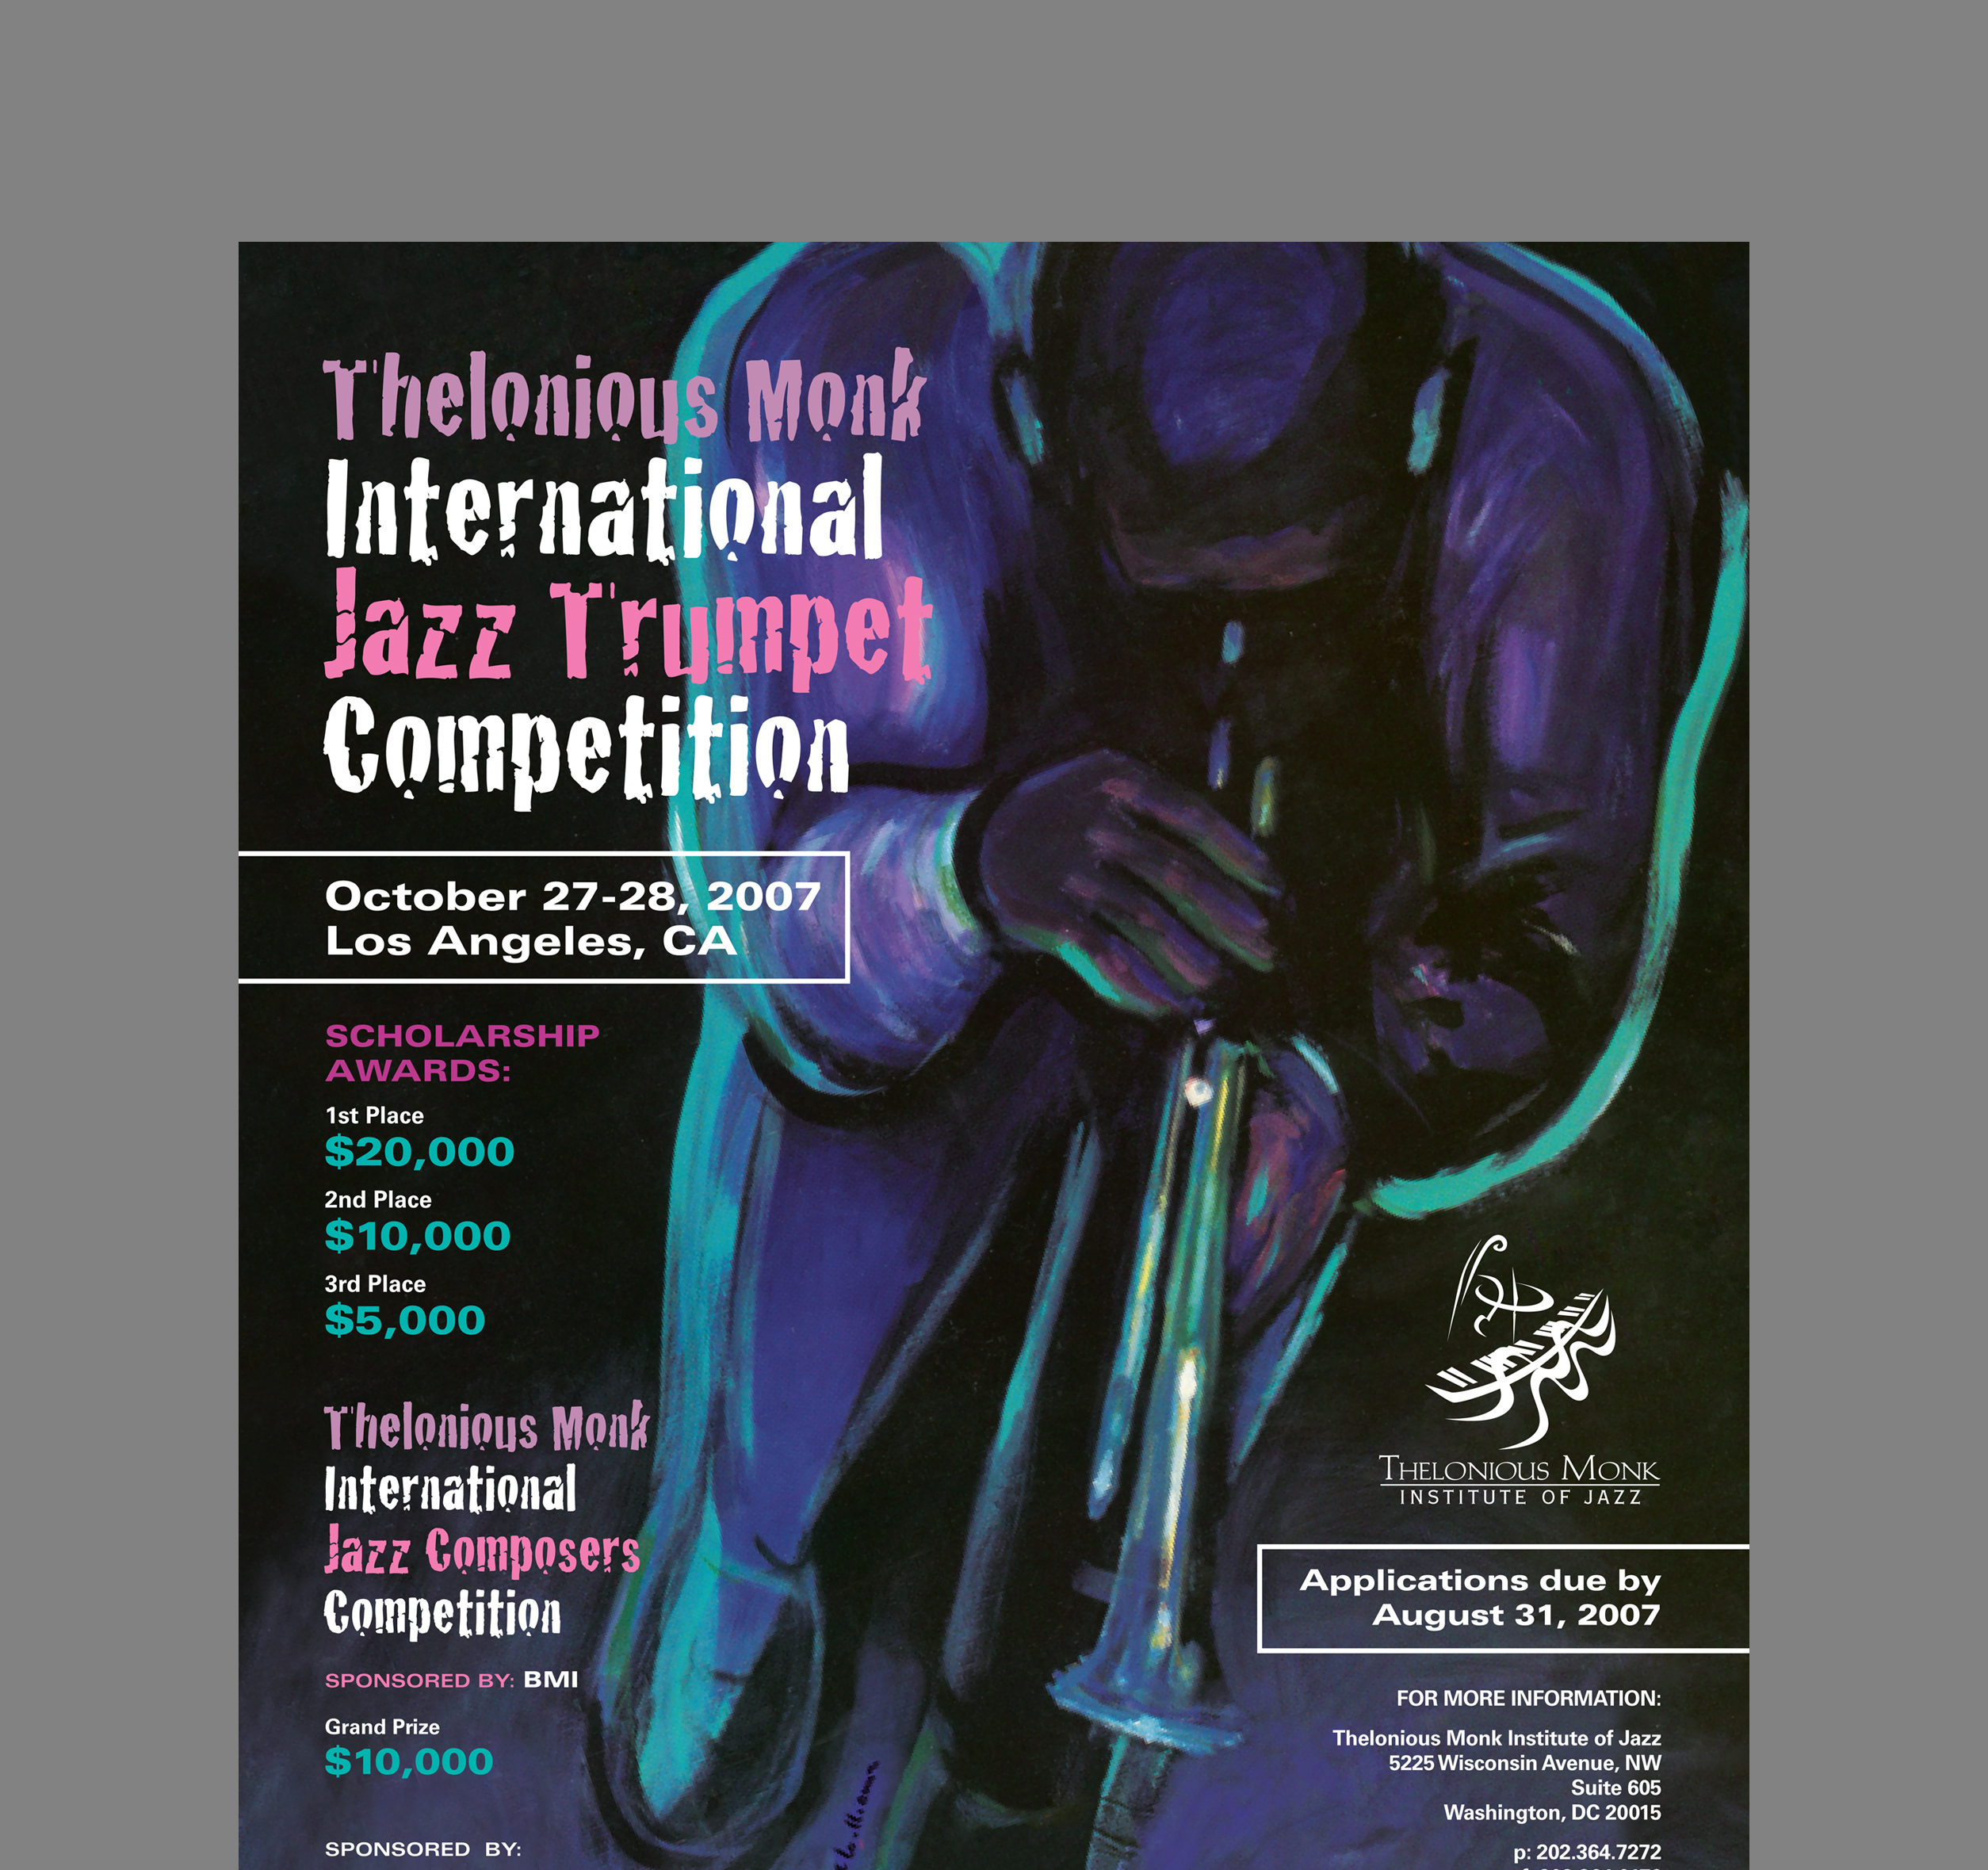 2007 Thelonious Monk jazz trumpet competition ad